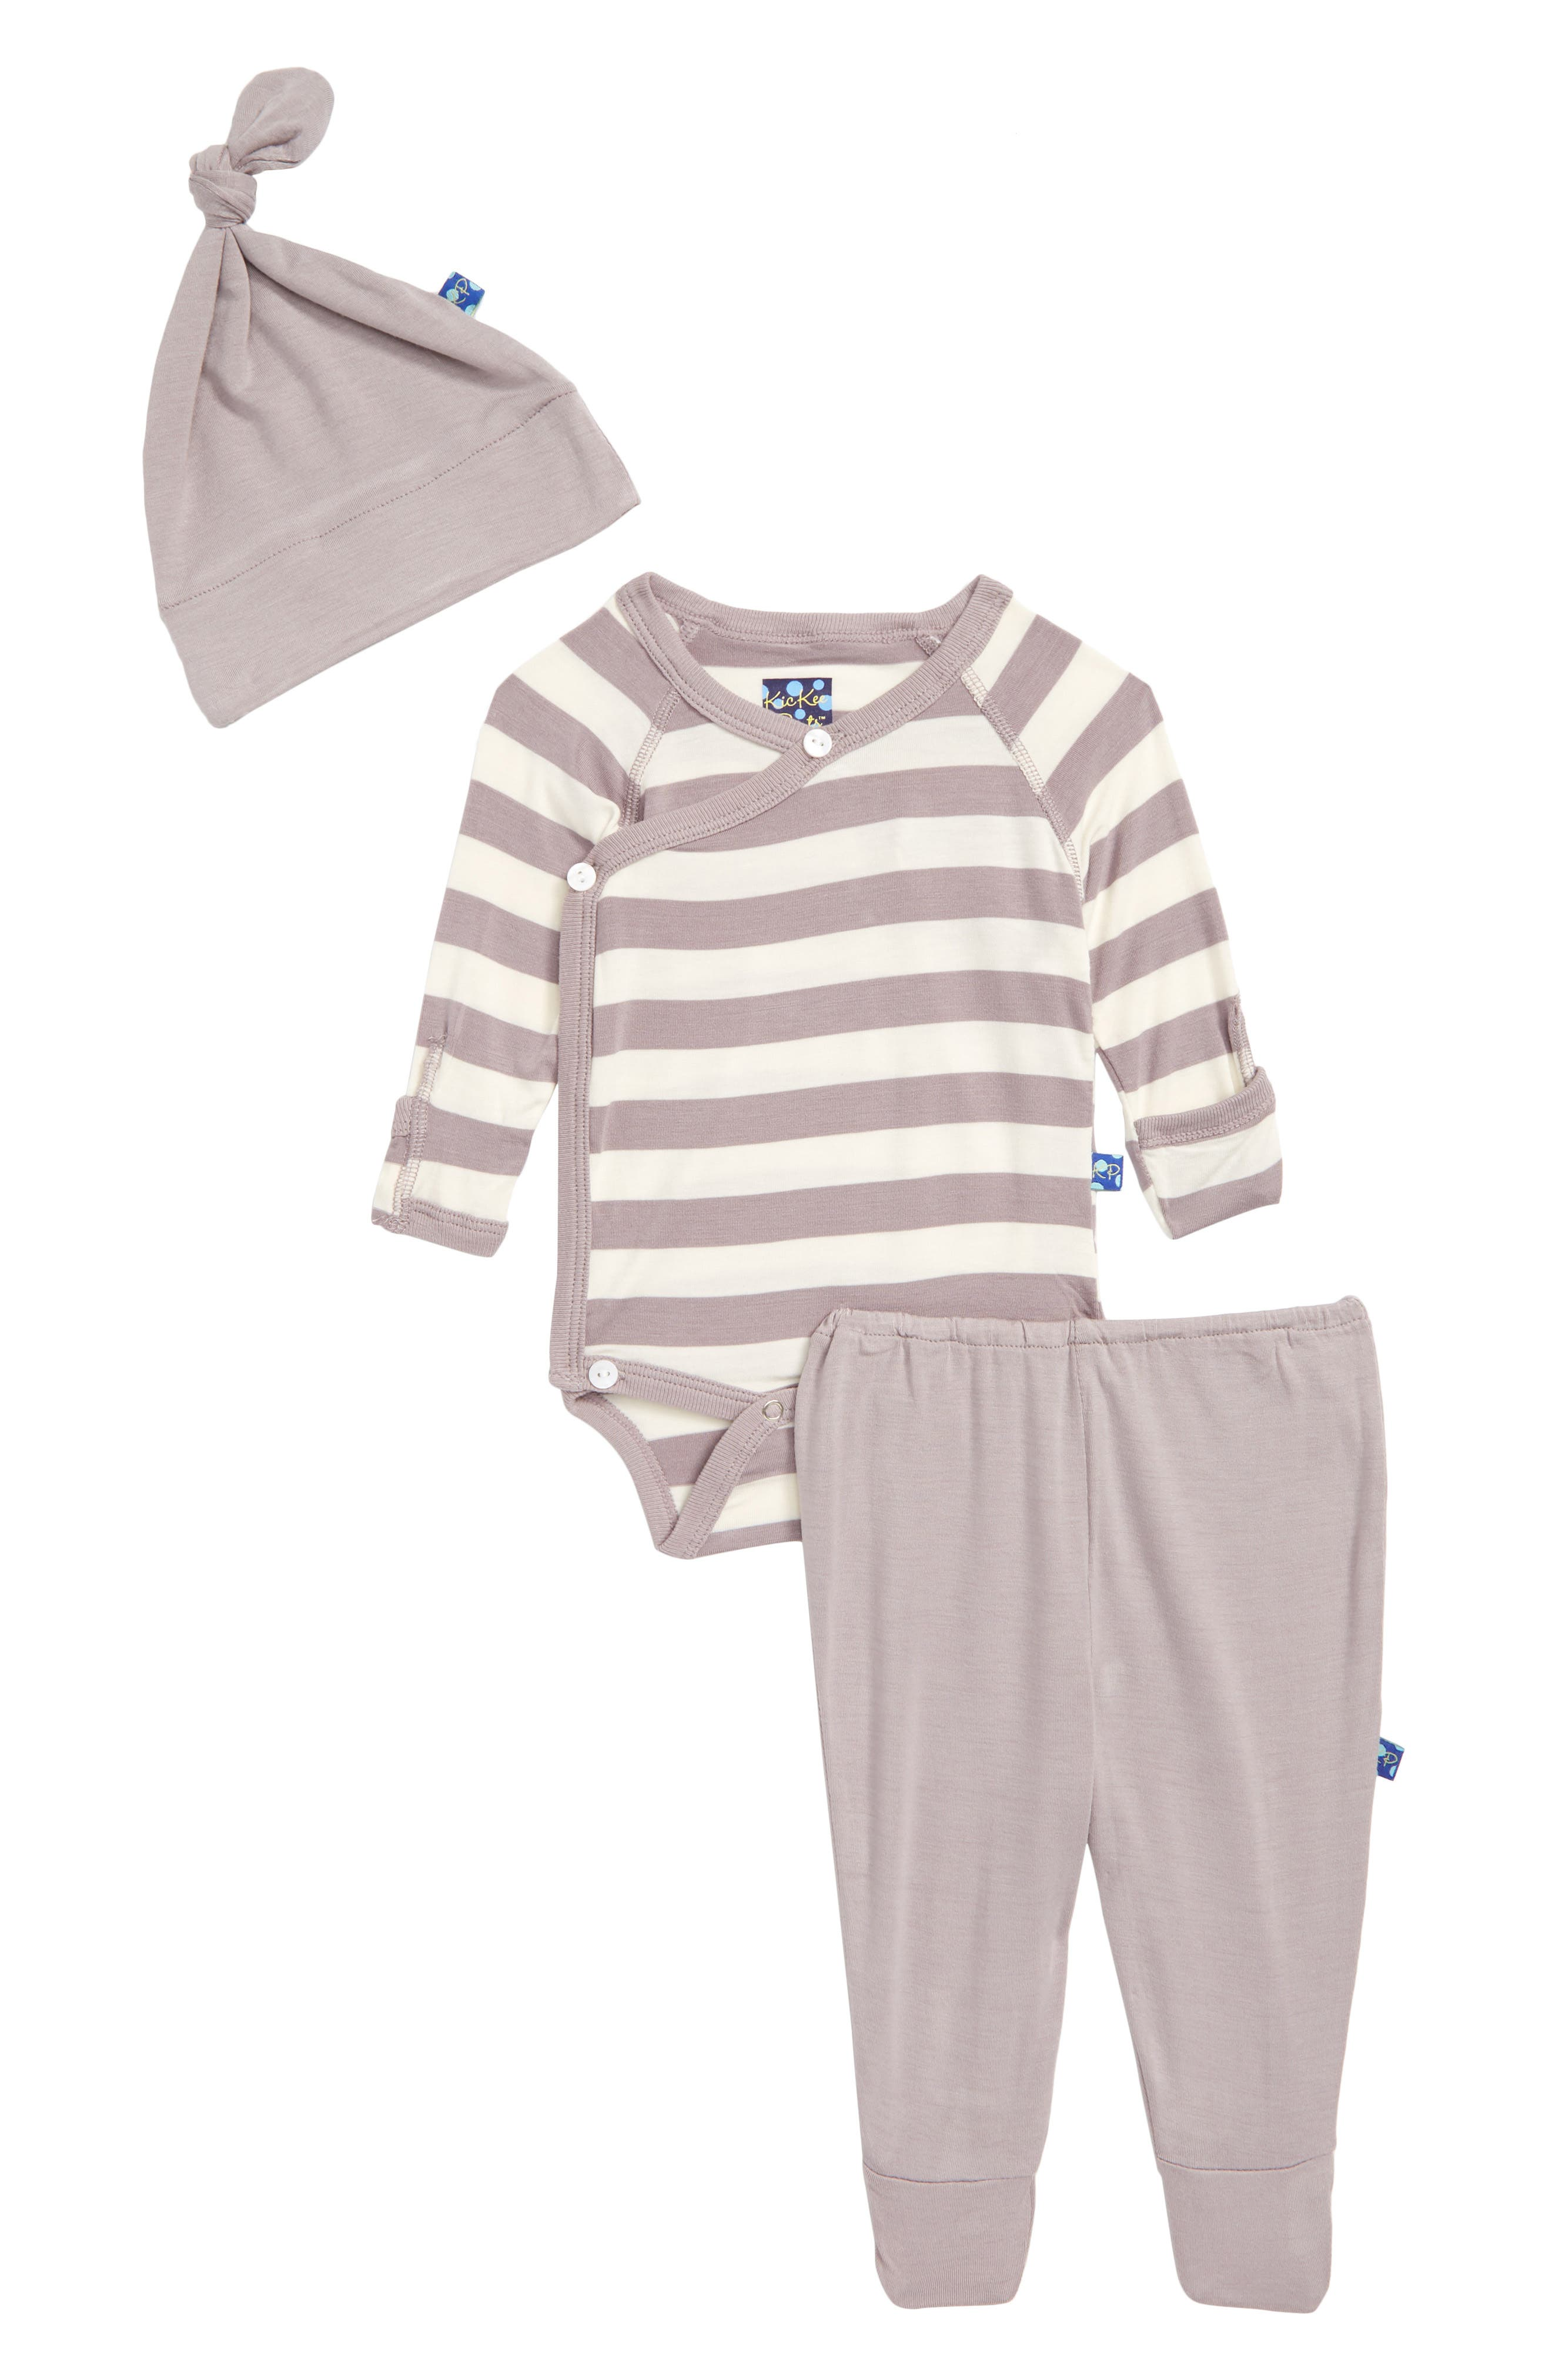 Feather Contrast Stripe Three-Piece Hat, Bodysuit & Pants Set,                             Main thumbnail 1, color,                             060